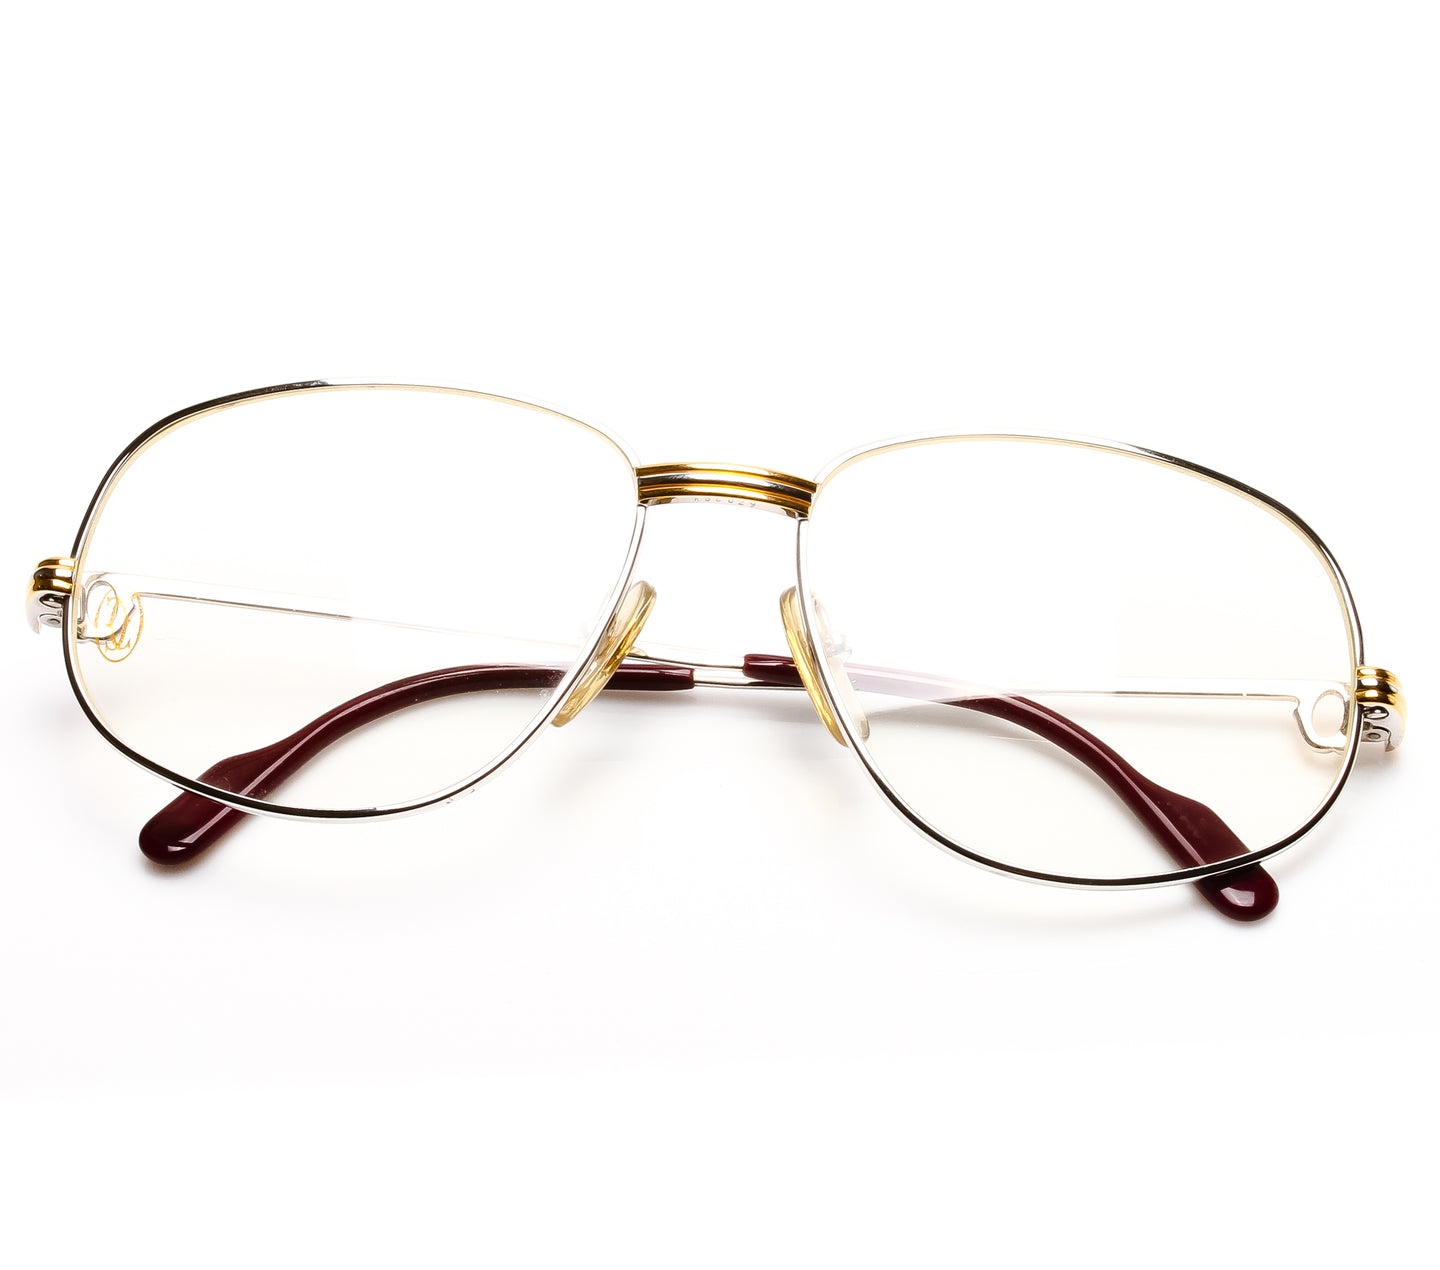 Cartier Romance Platino Thumbnail, Cartier , glasses frames, eyeglasses online, eyeglass frames, mens glasses, womens glasses, buy glasses online, designer eyeglasses, vintage sunglasses, retro sunglasses, vintage glasses, sunglass, eyeglass, glasses, lens, vintage frames company, vf